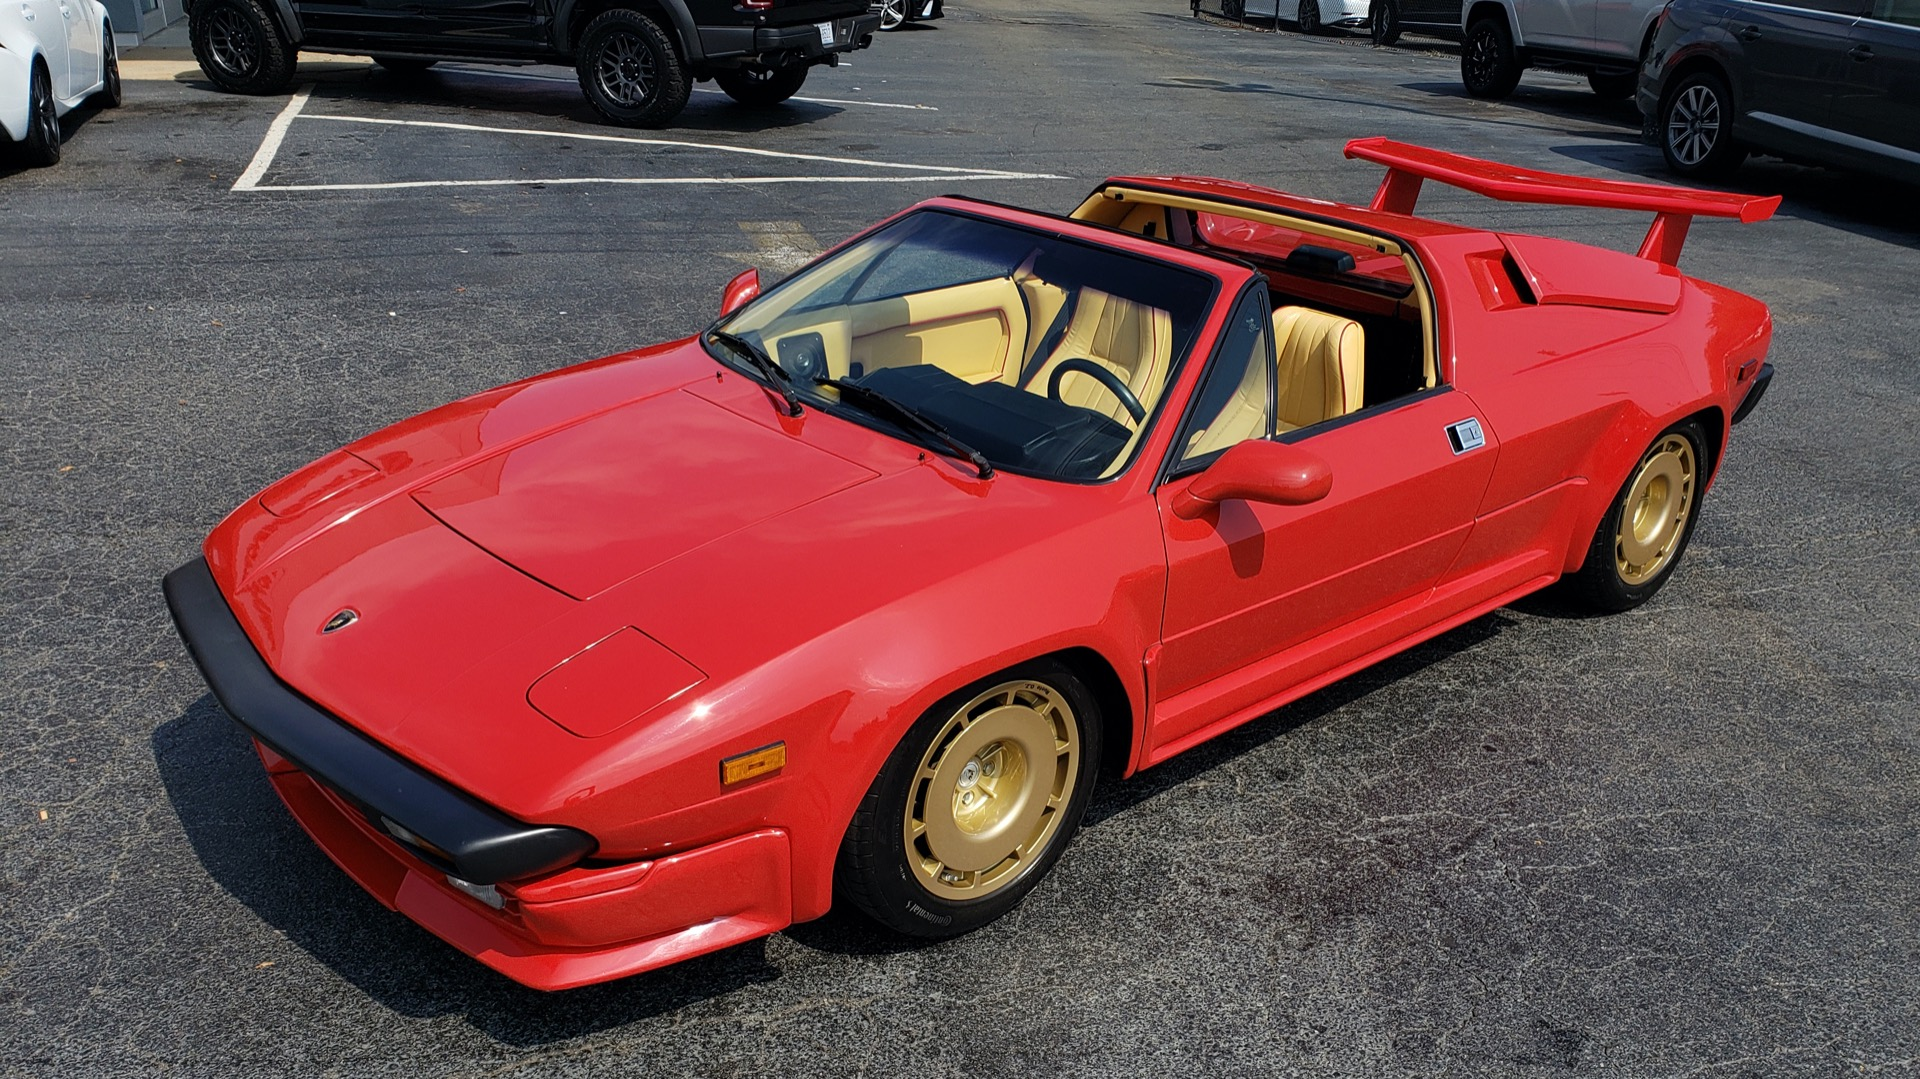 Used 1988 Lamborghini Jalpa 3.5 / 5-Speed Man / Low Miles / Excellent Condition for sale $108,995 at Formula Imports in Charlotte NC 28227 19